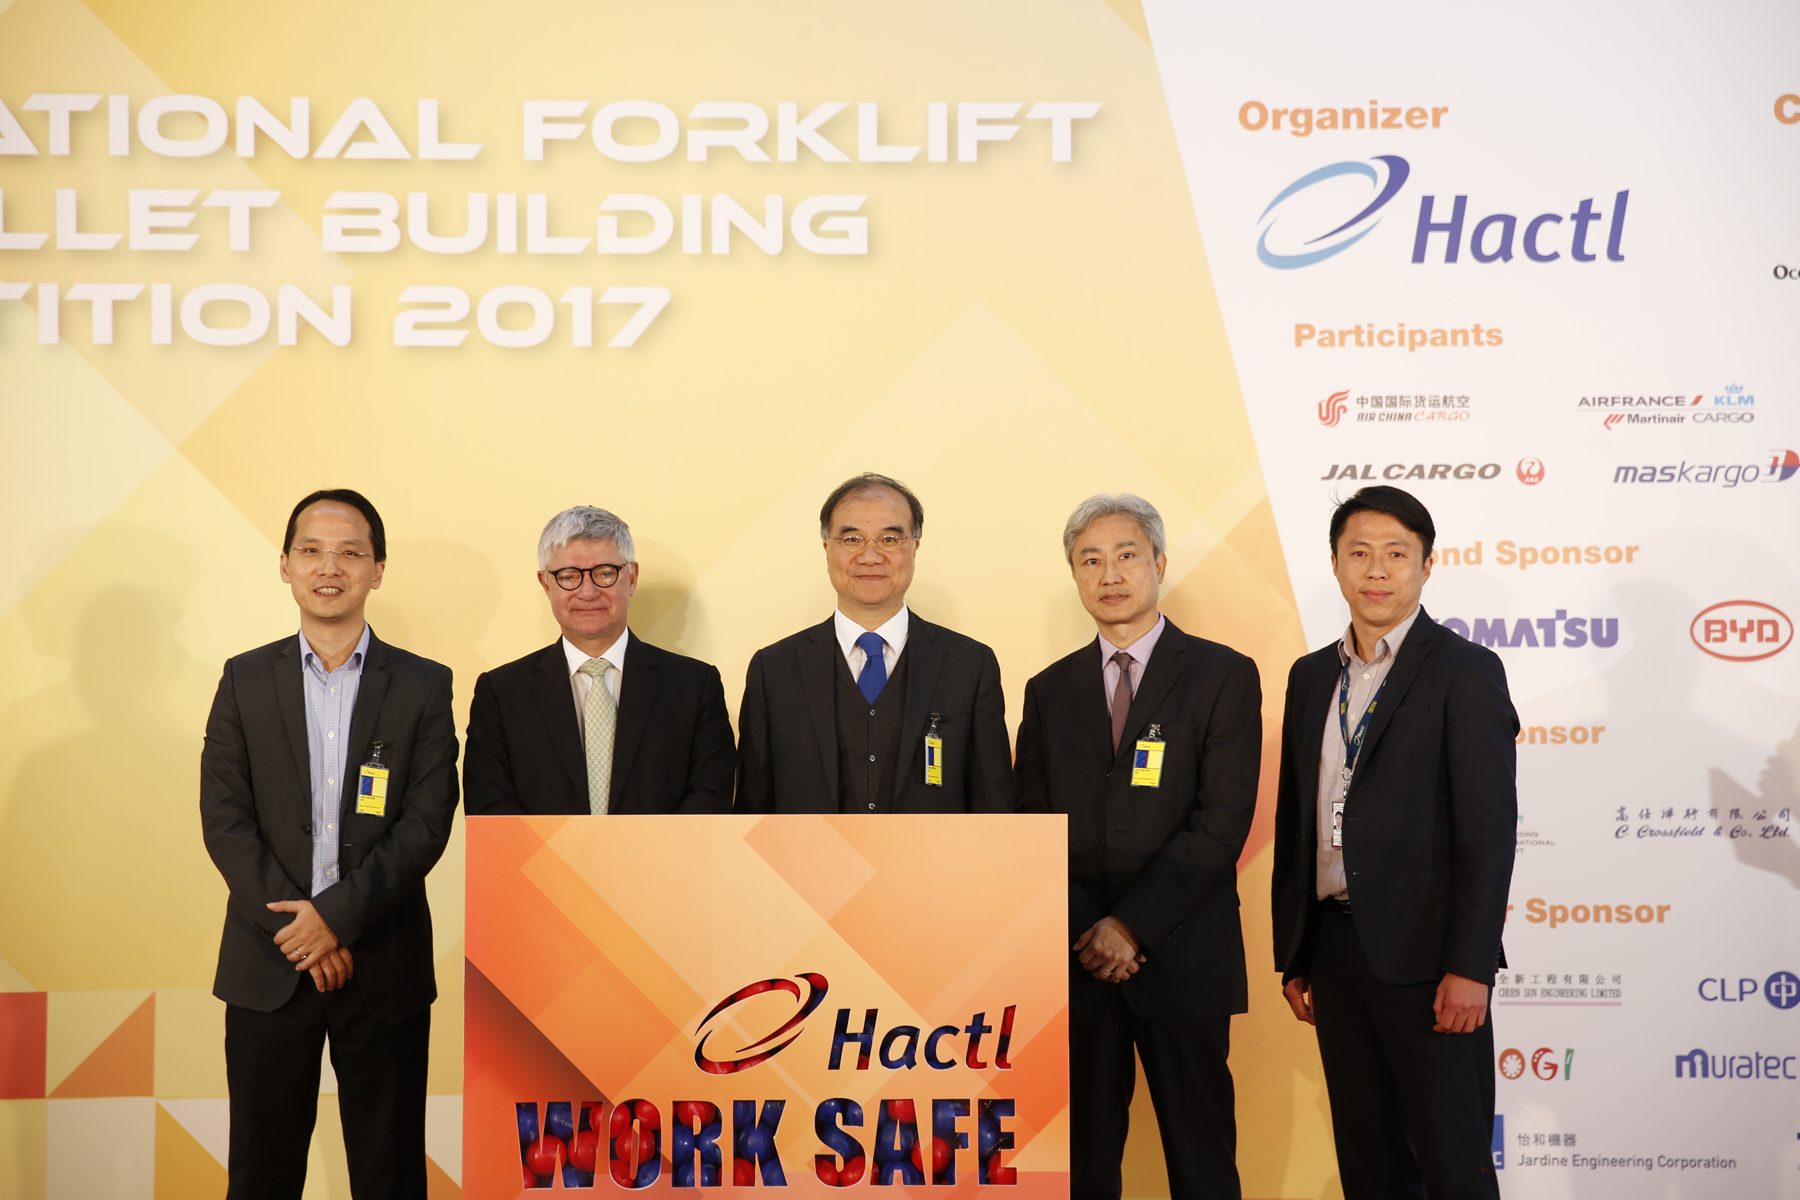 Hactl International Forklift and Pallet Building Competition 2017